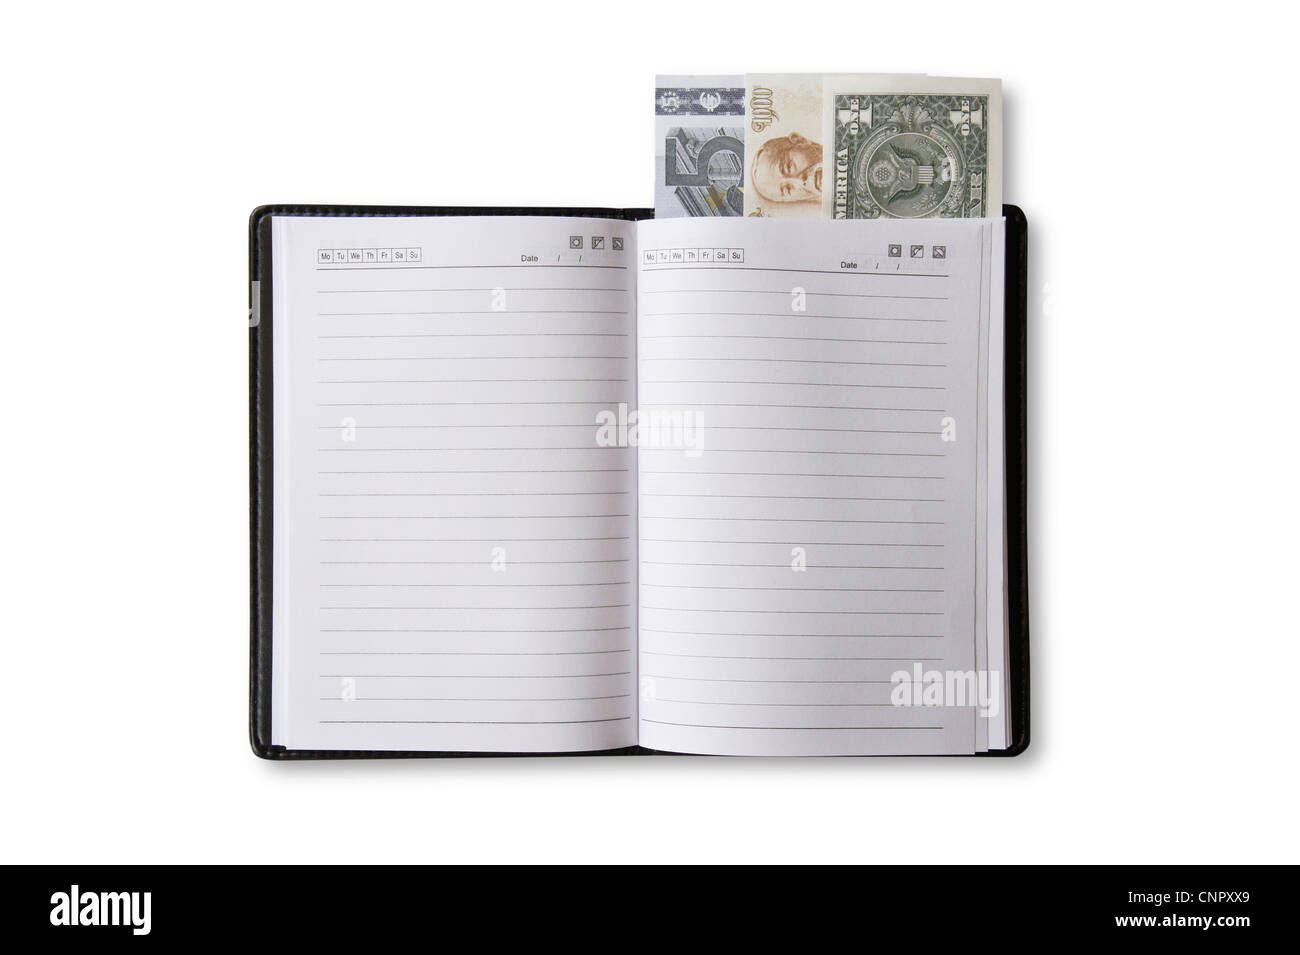 Open book and U.S. currency - Stock Image